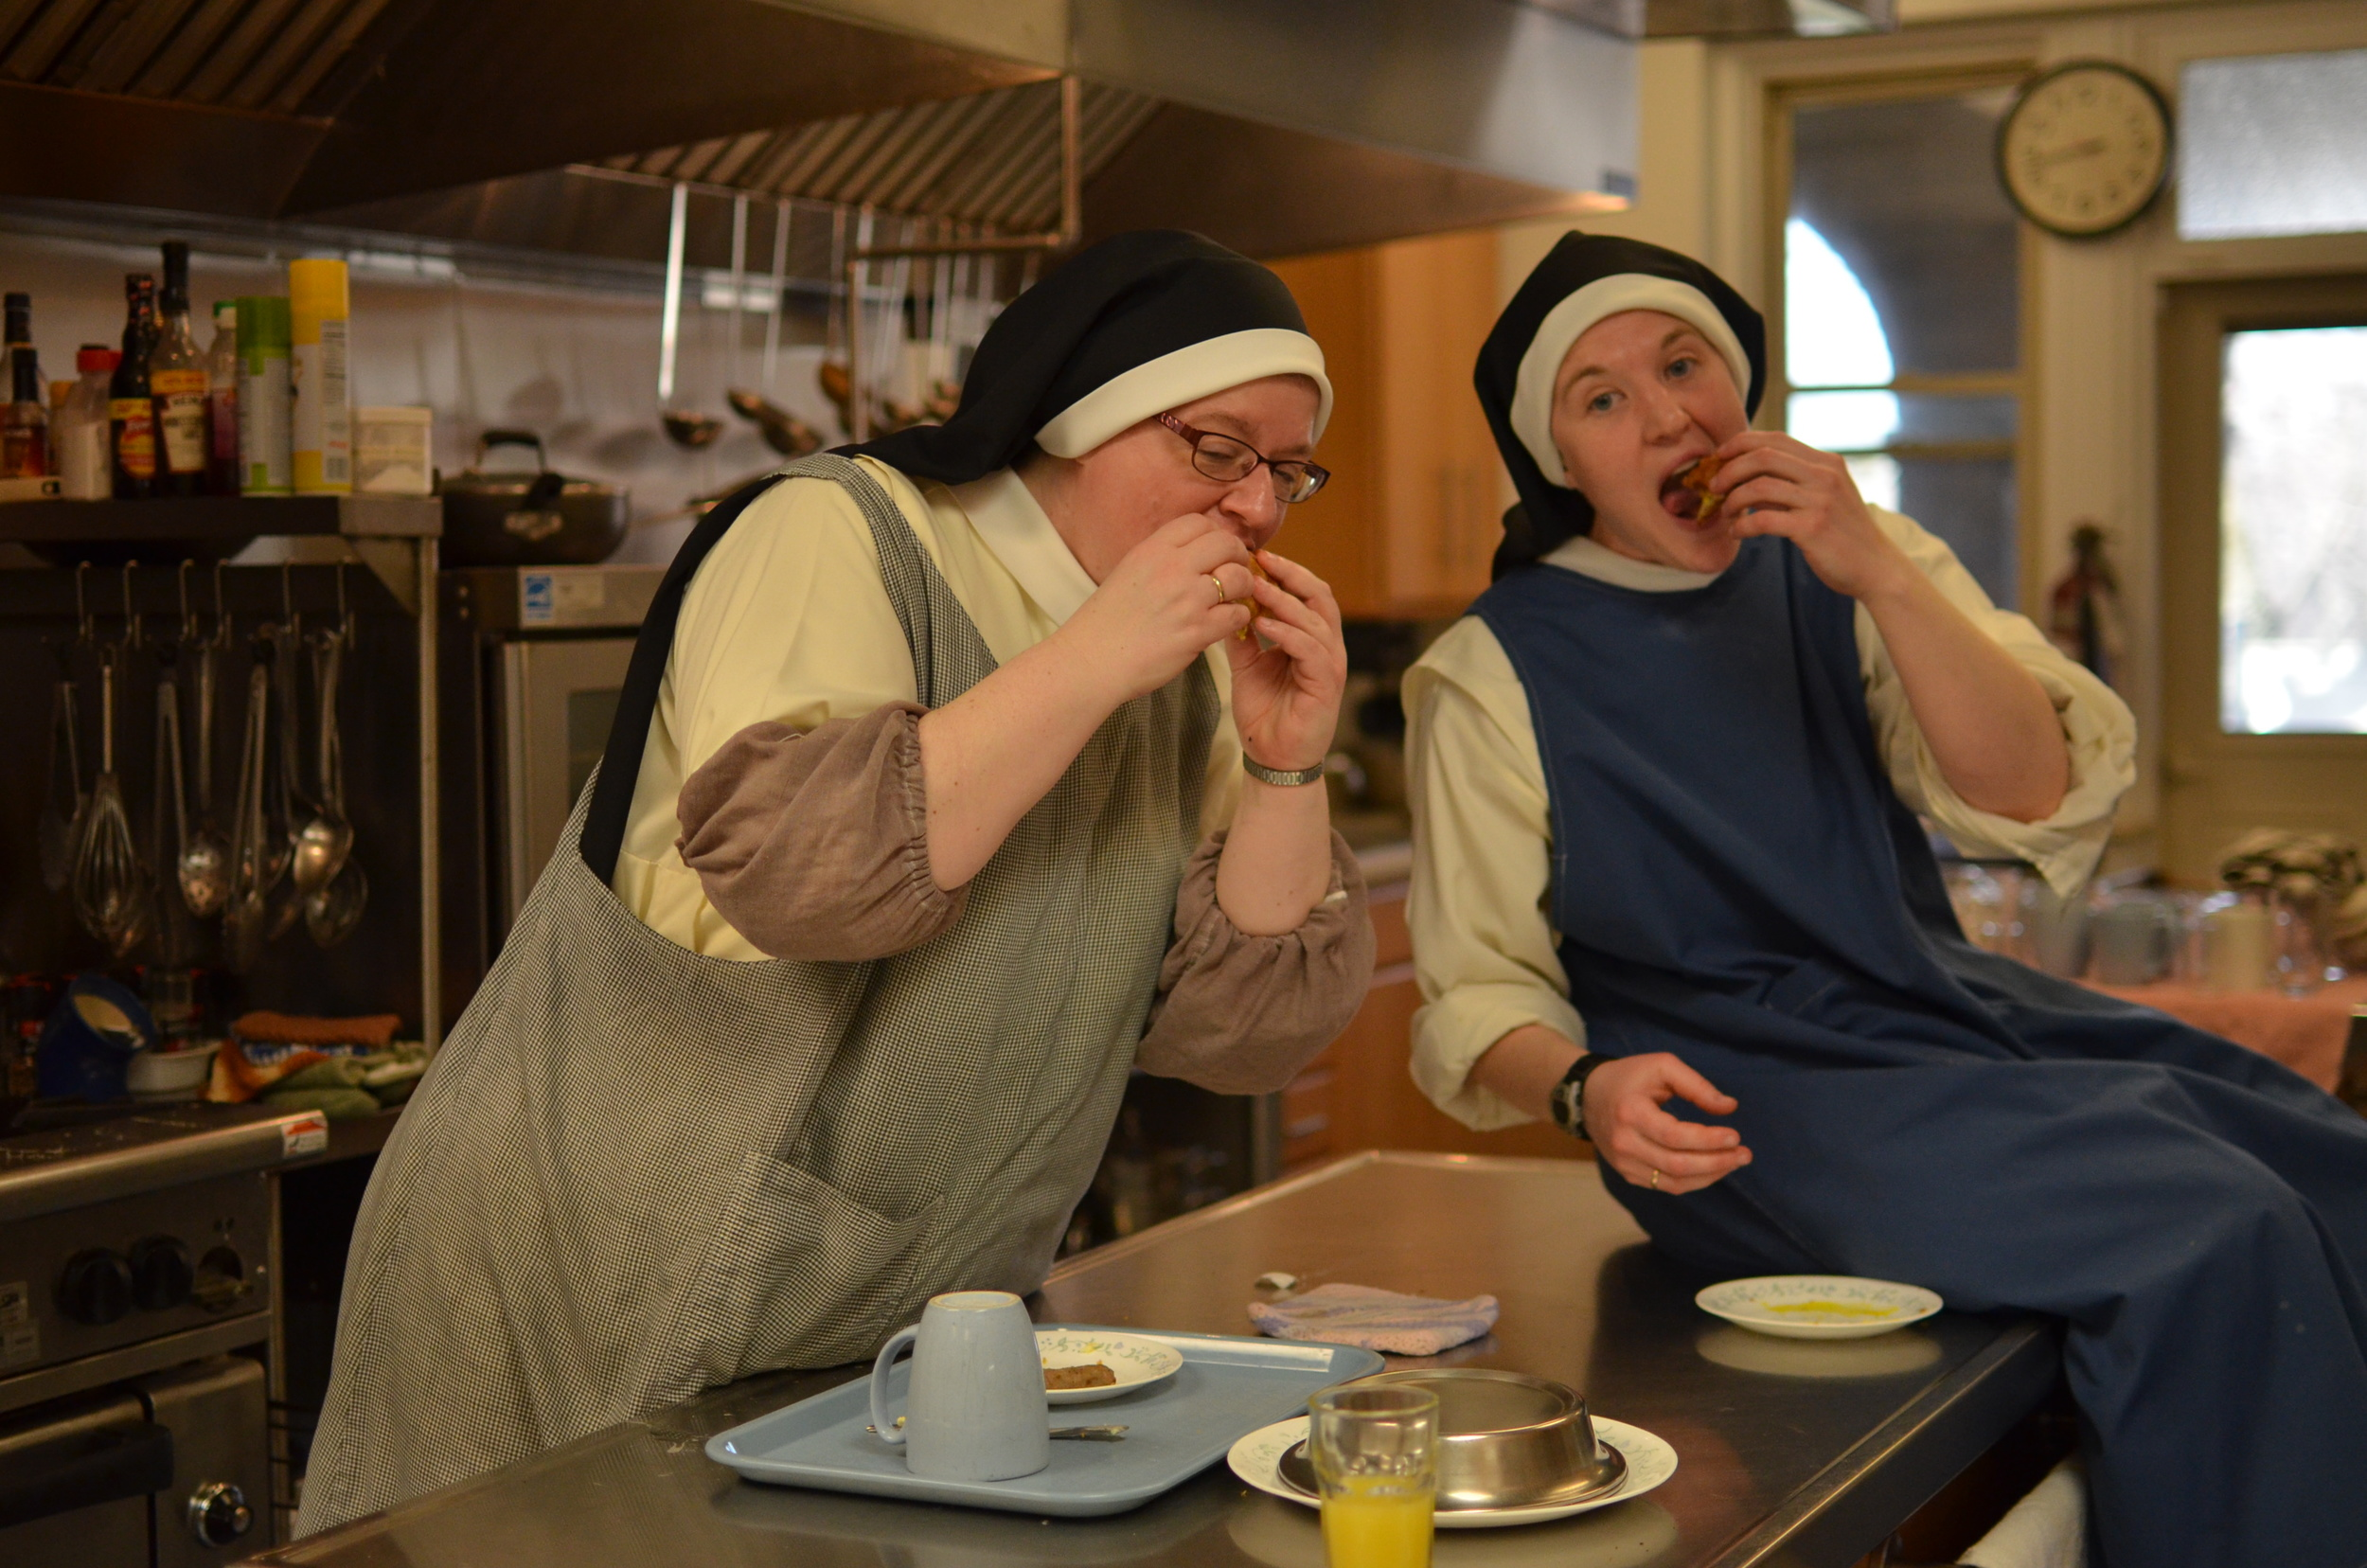 Sr. Judith Miryam and Sr. Mary Magdalene enjoy the delicious breakfast they cooked for us!